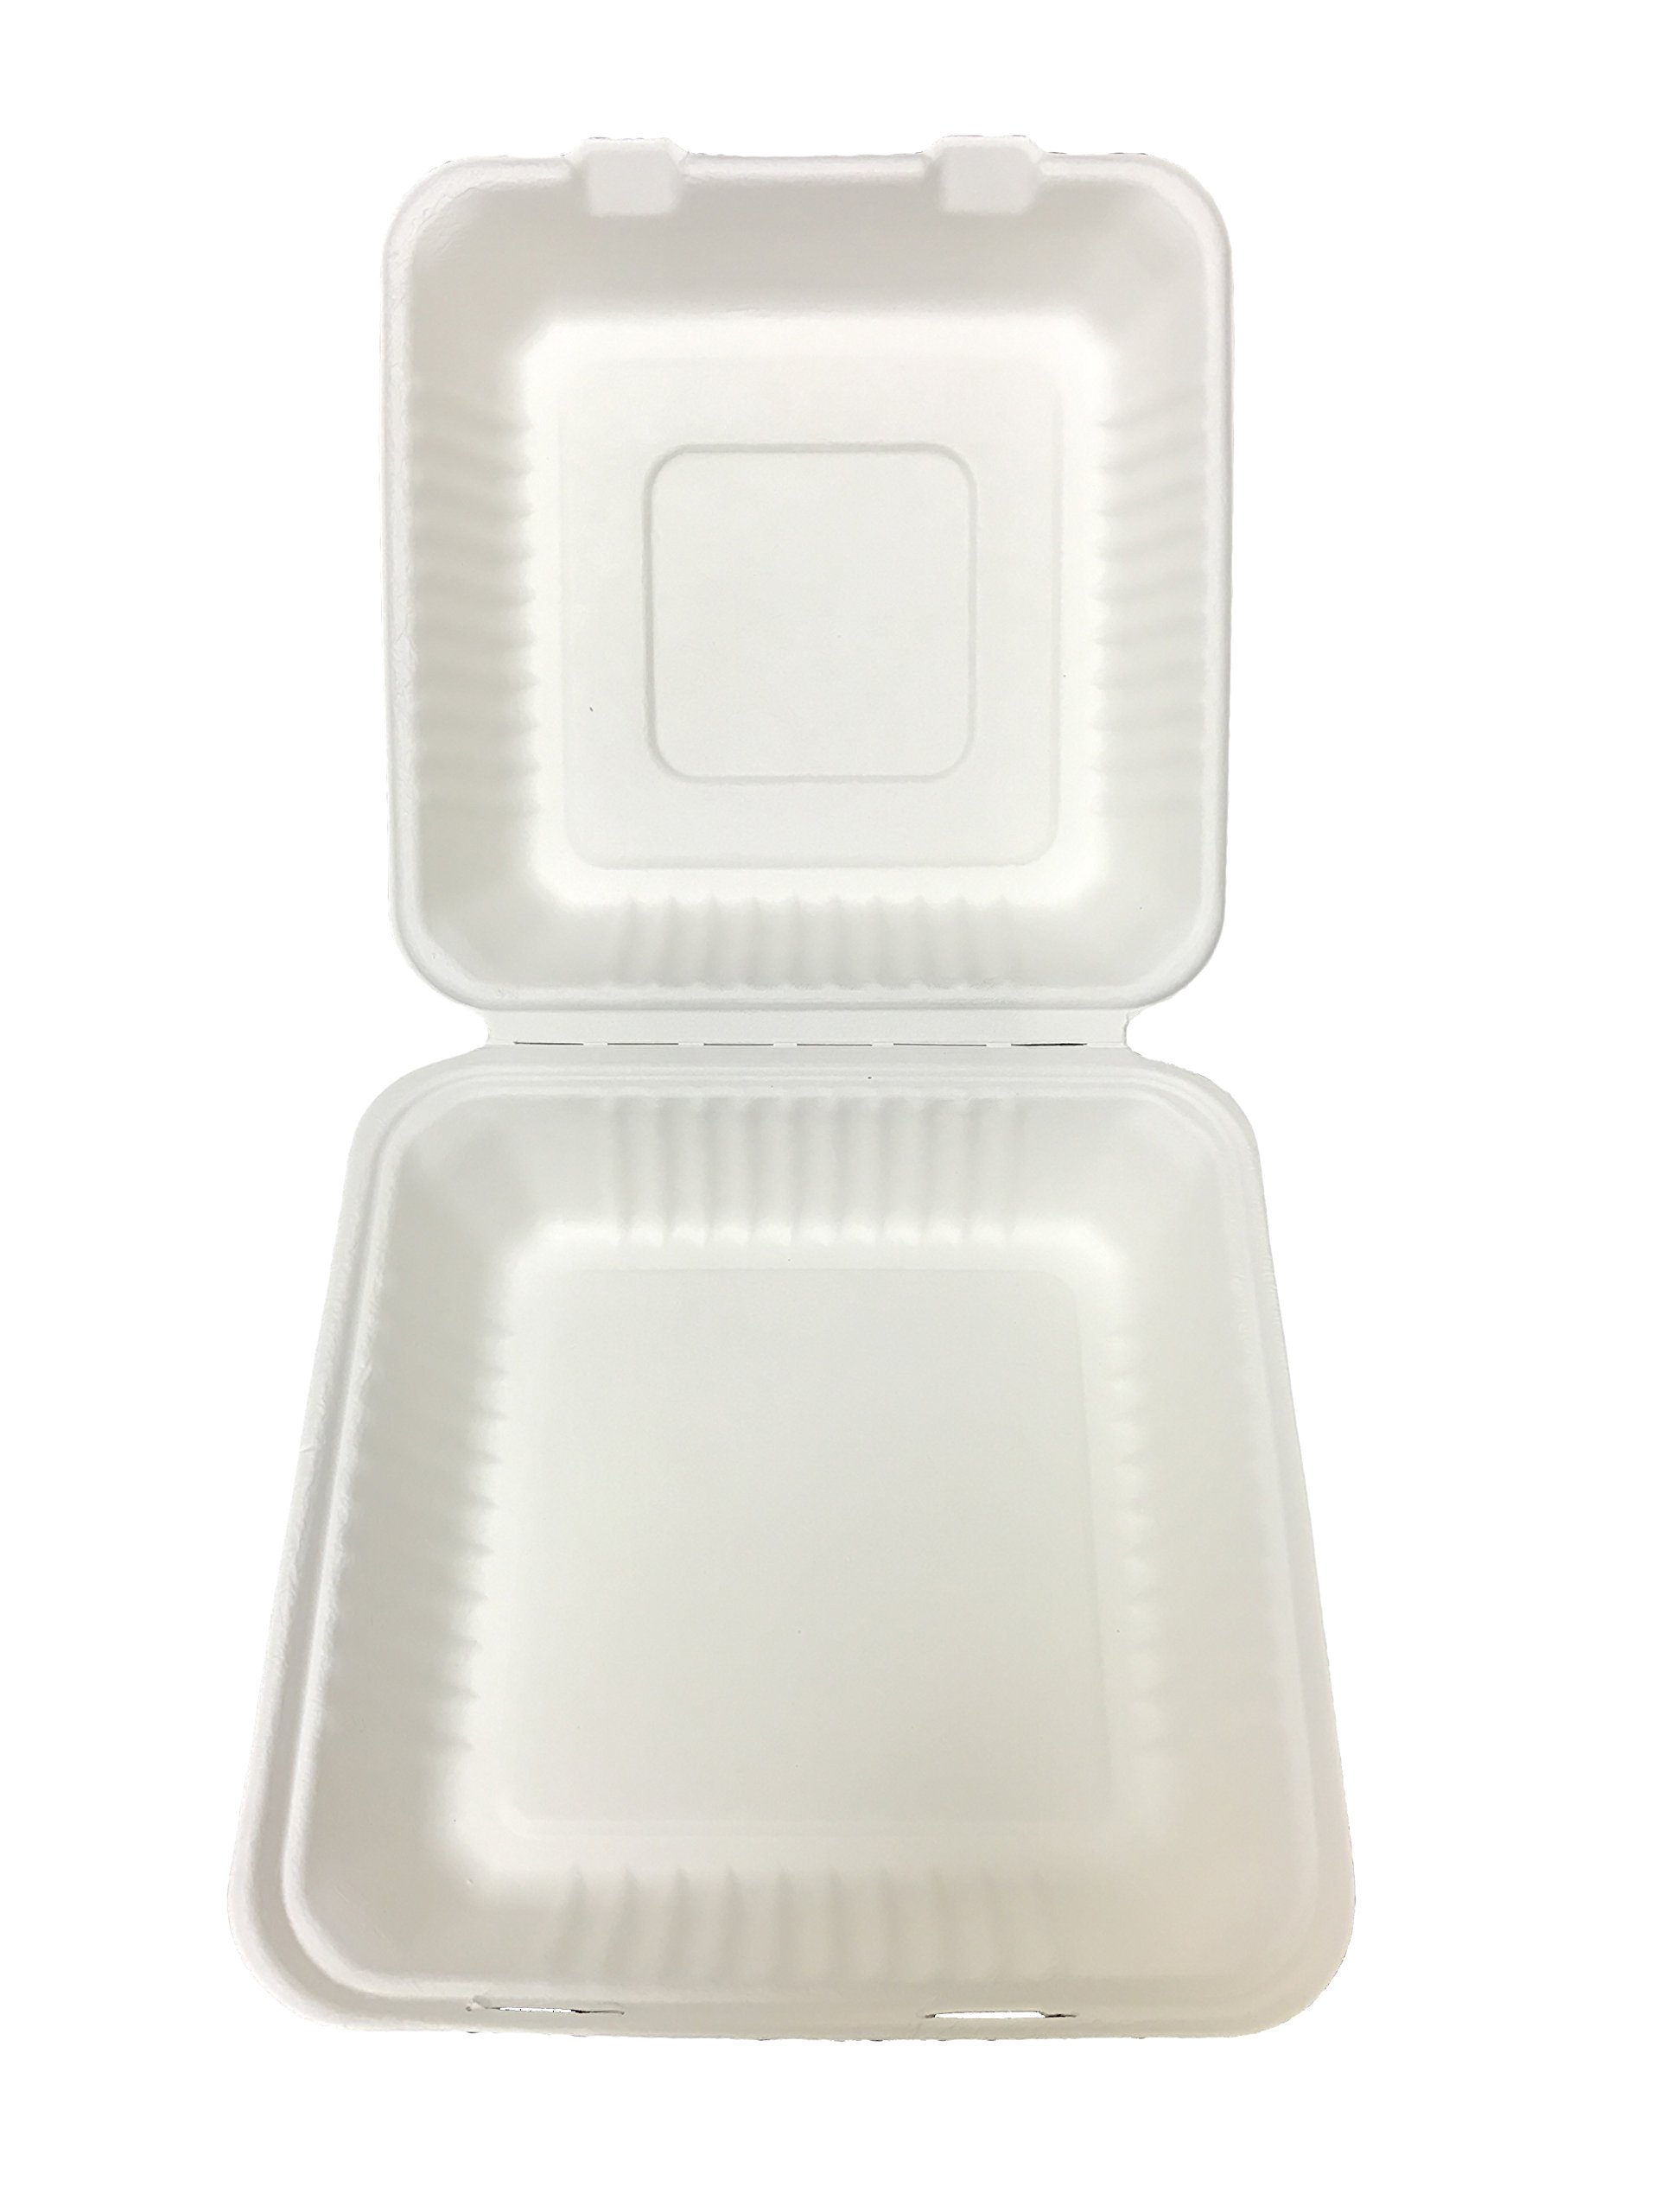 Primeware Bagasse Hinged Lid Container - Large 9 x 3.19'' - 200/Cs (2 x 100), Not Applicable